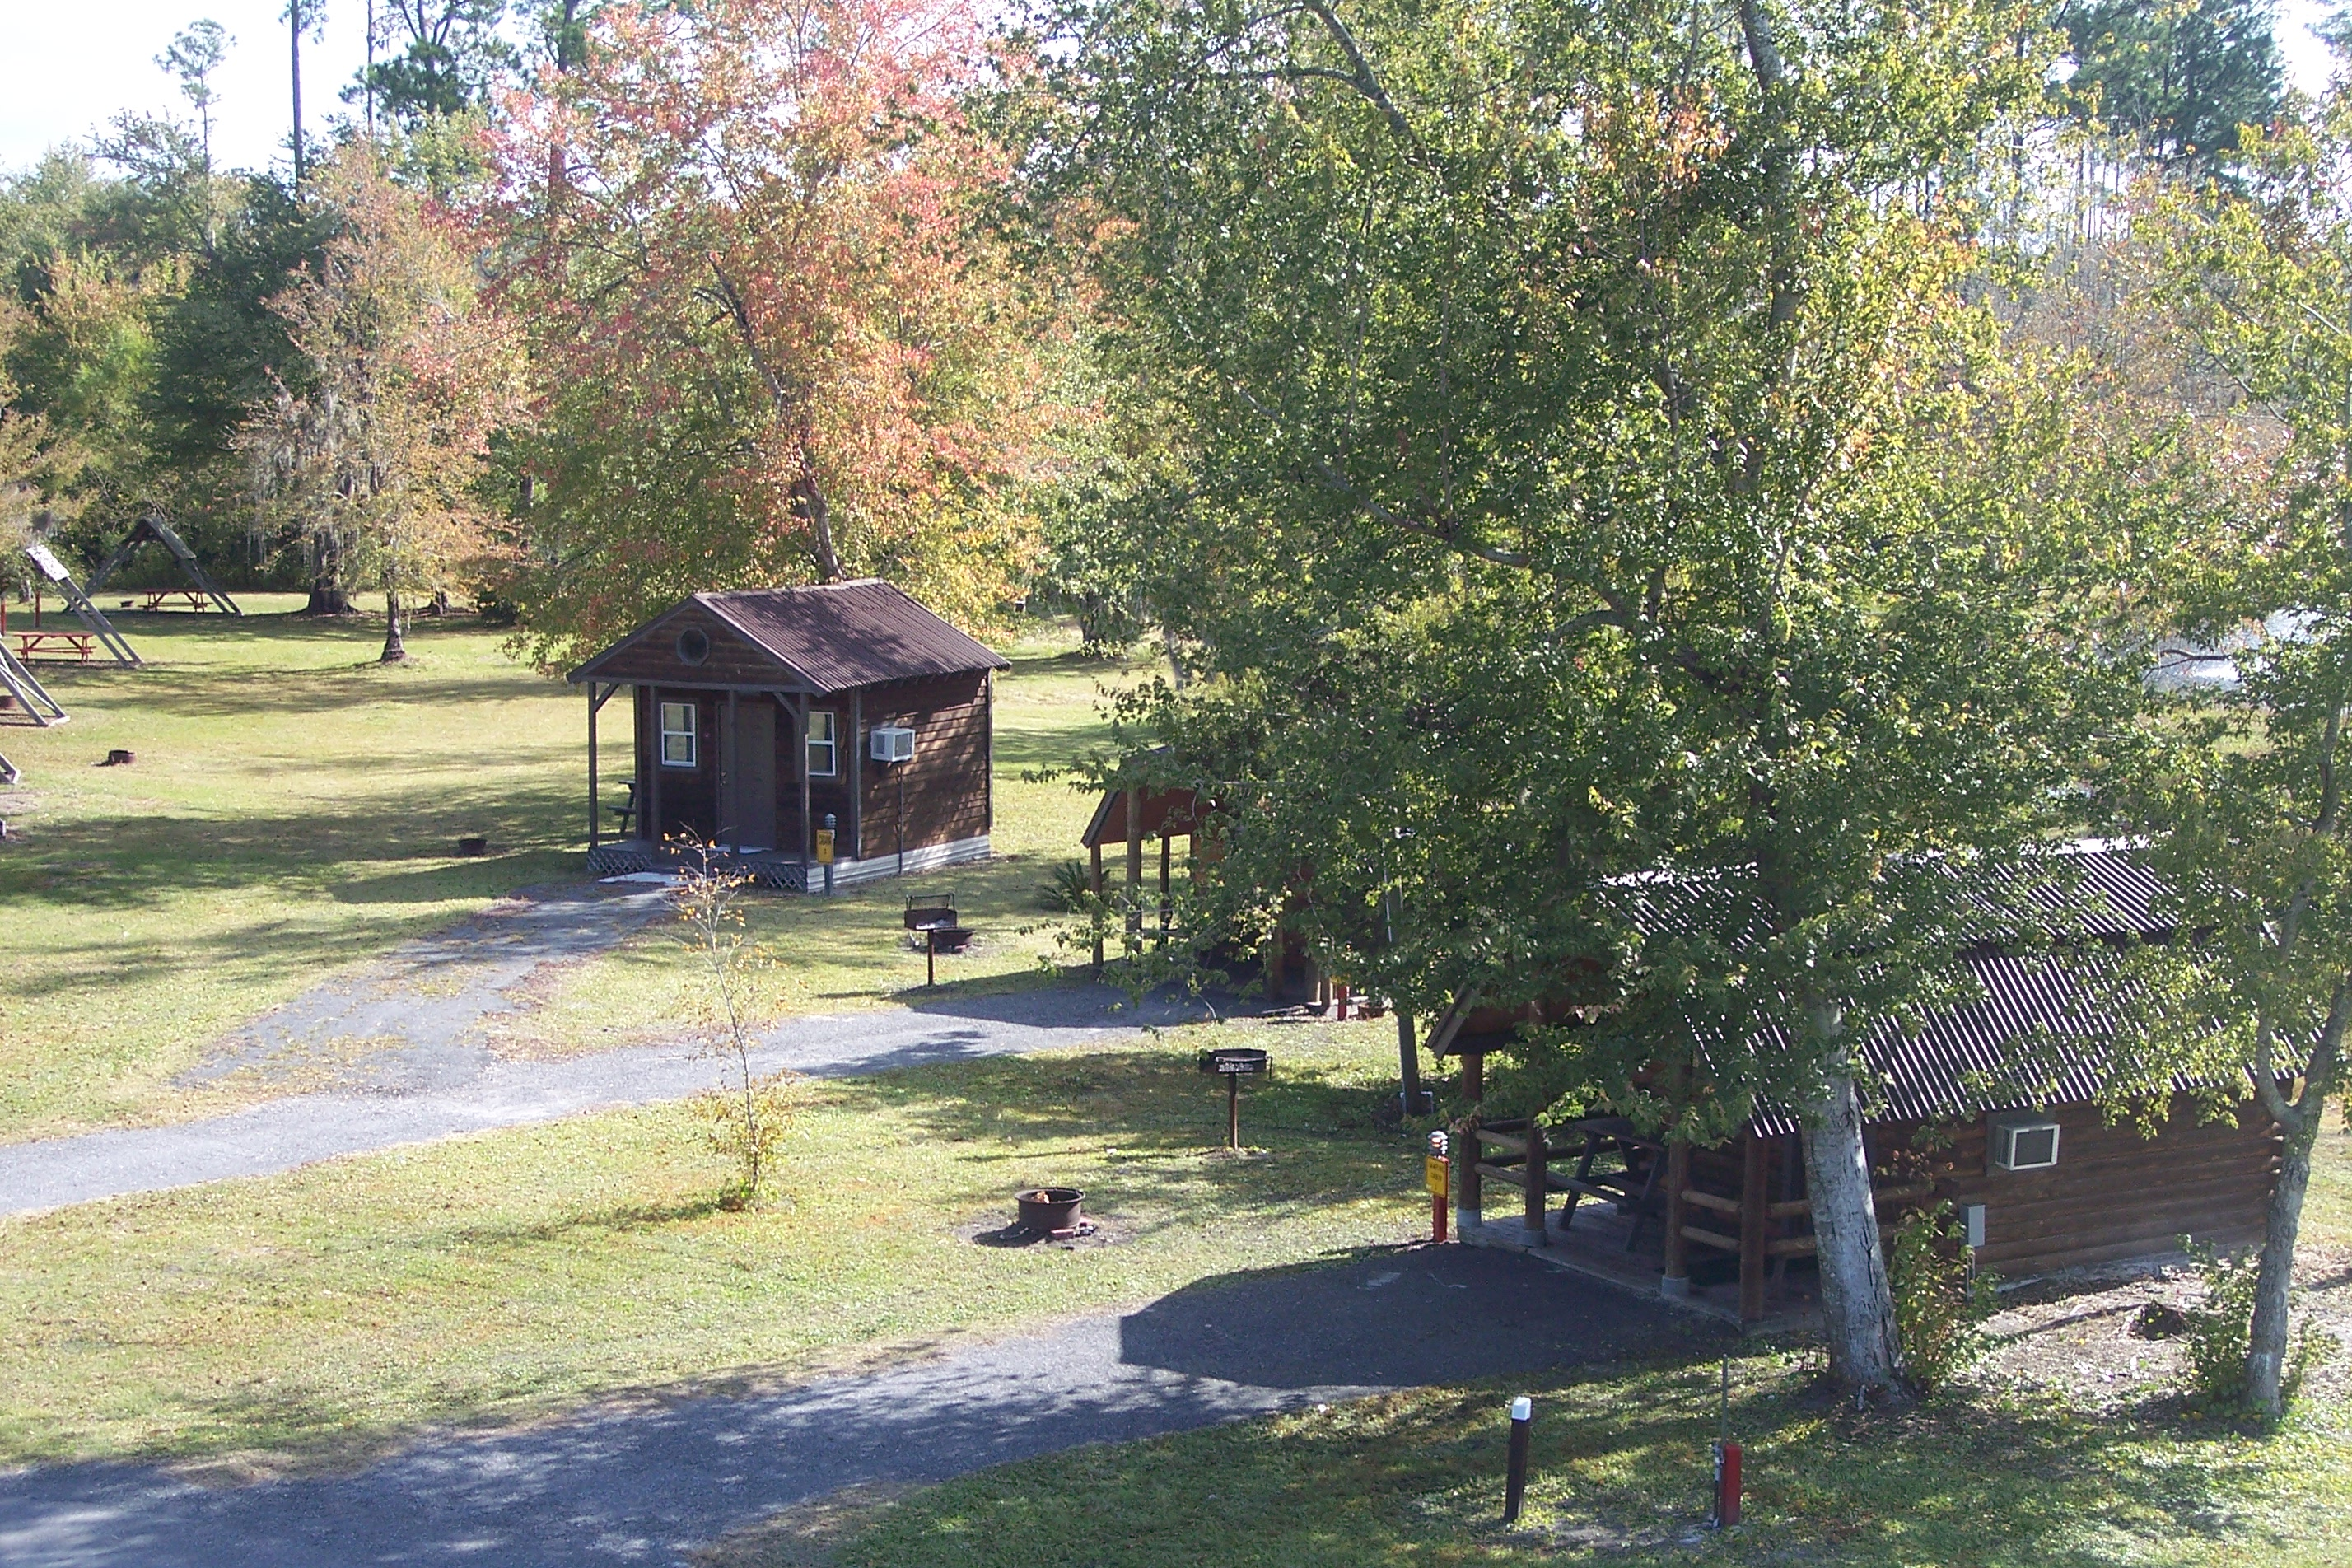 Lake City Campground